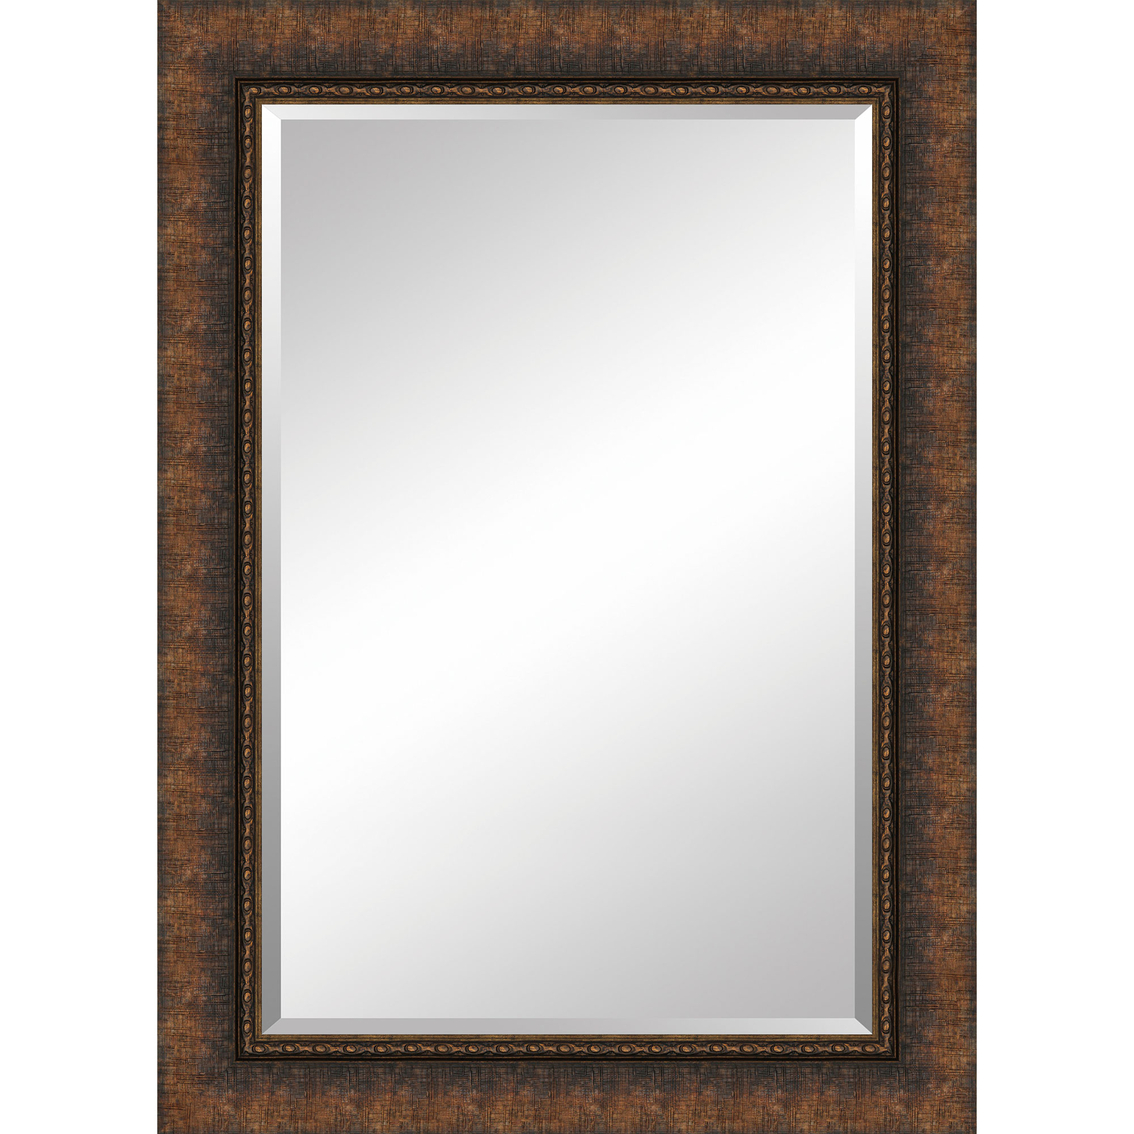 Simply Perfect 24 X 36 In Framed Mirror